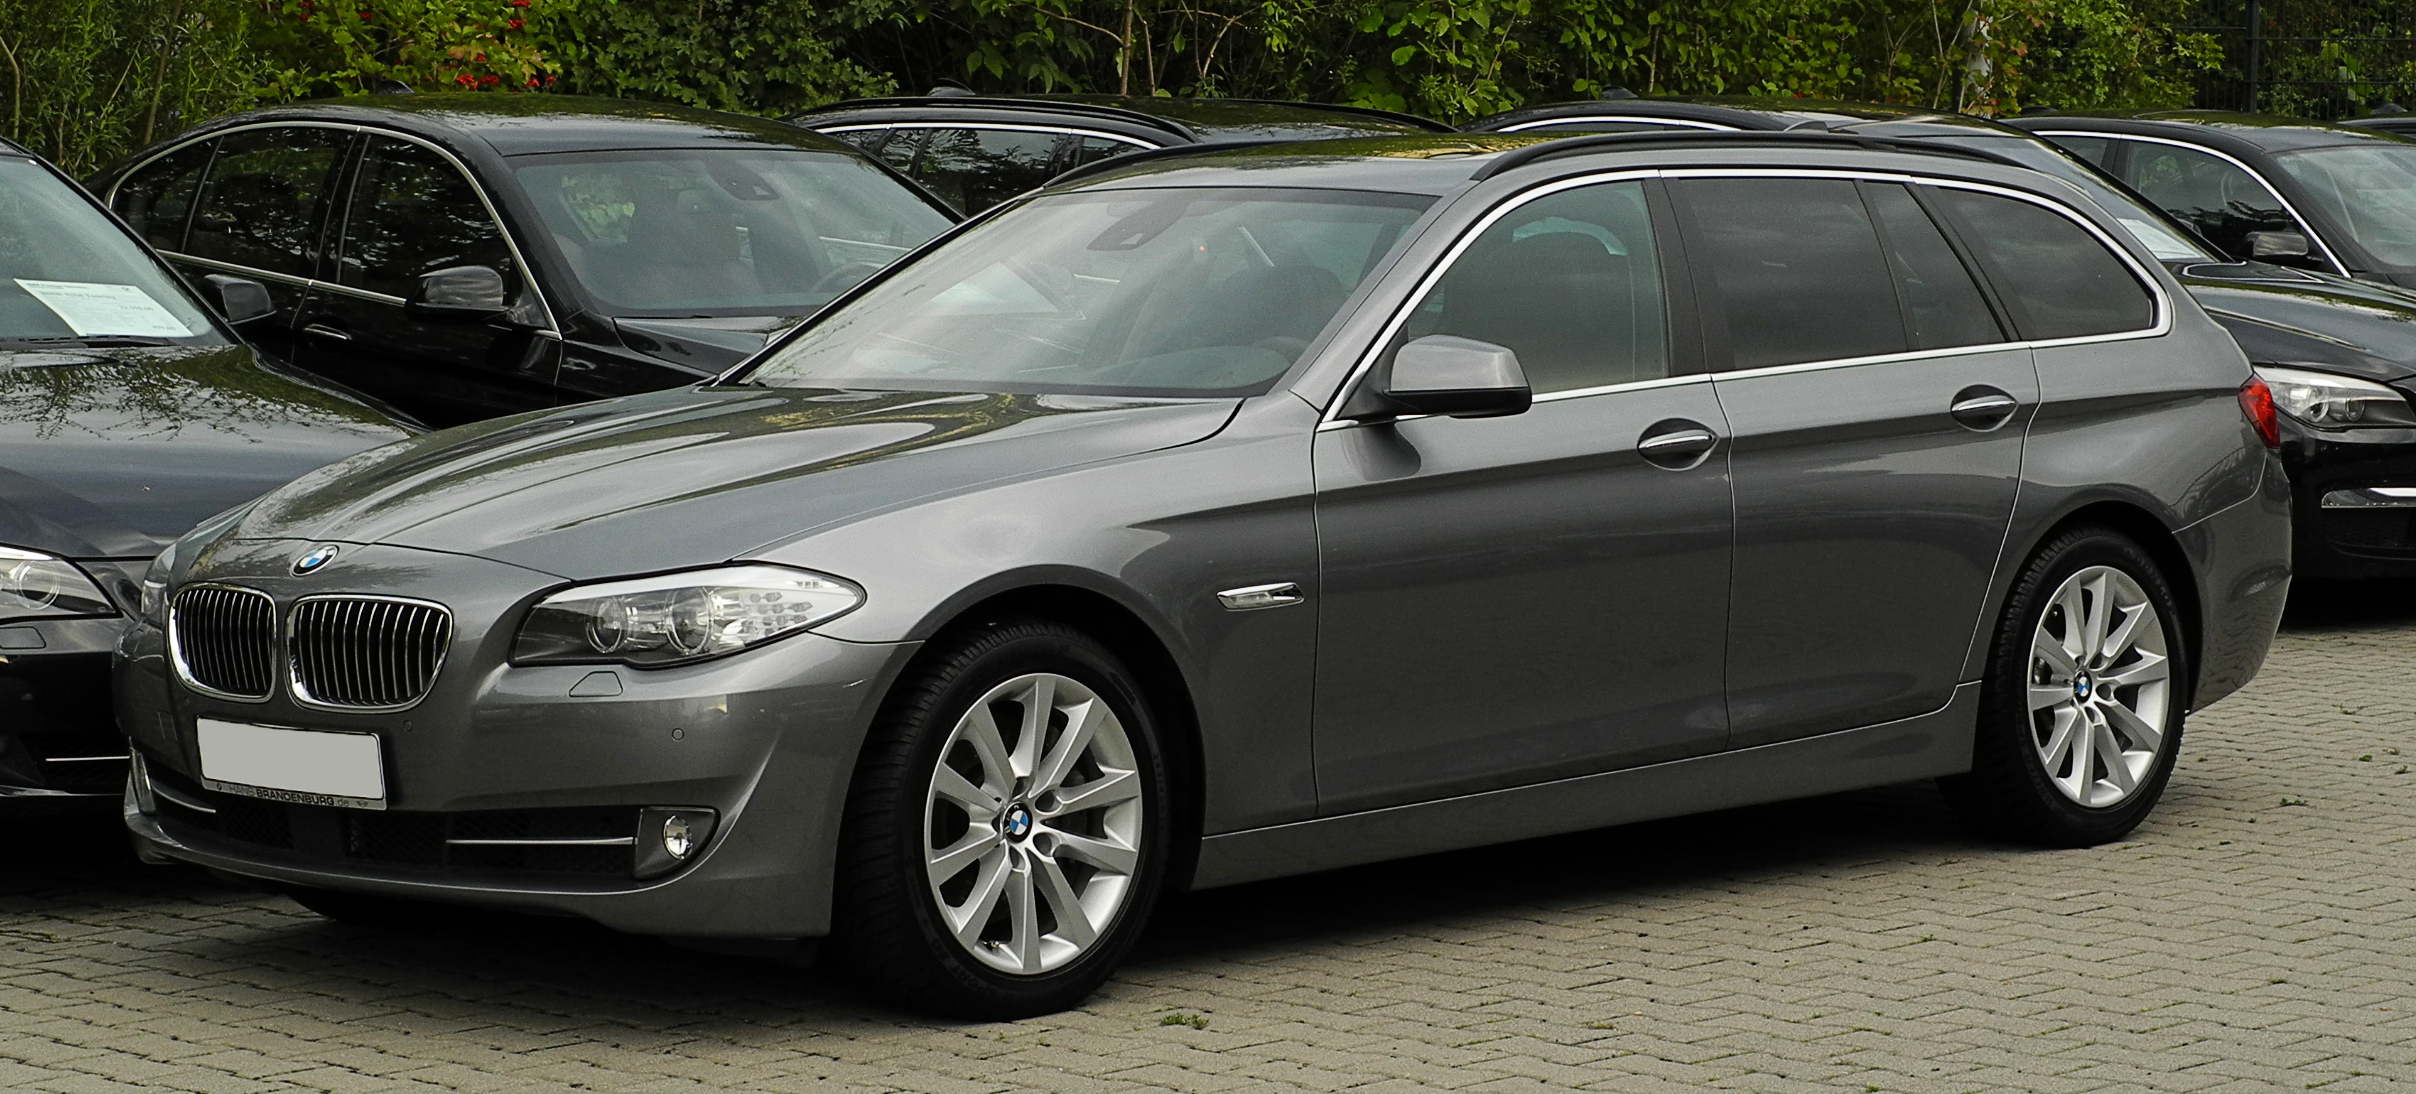 File:BMW 535i Touring (F11) – Frontansicht (1), 15. August ...